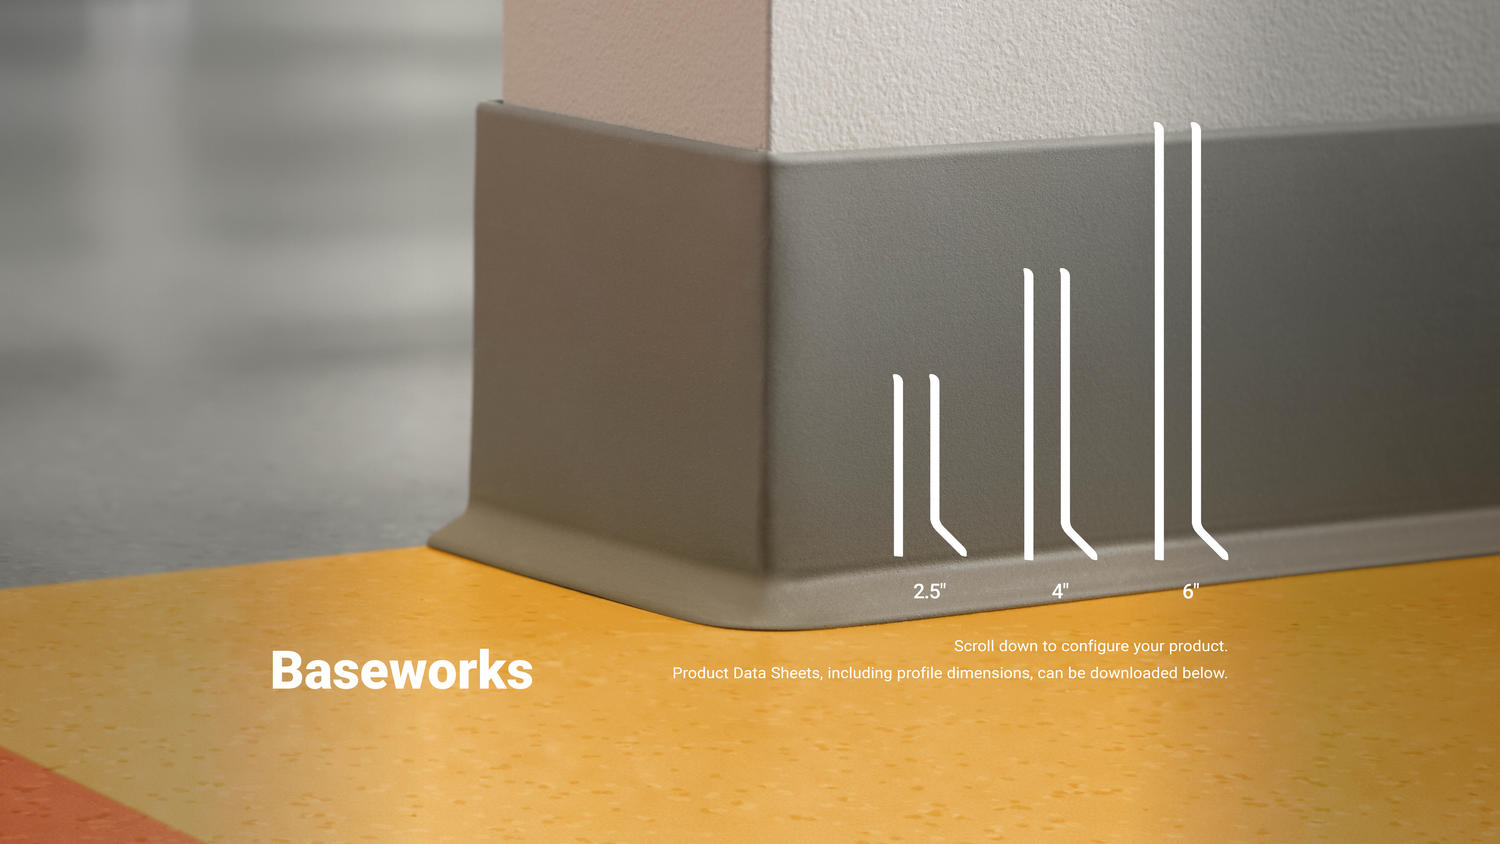 Baseworks Thermoset Rubber Wall Base Commercial Flooring